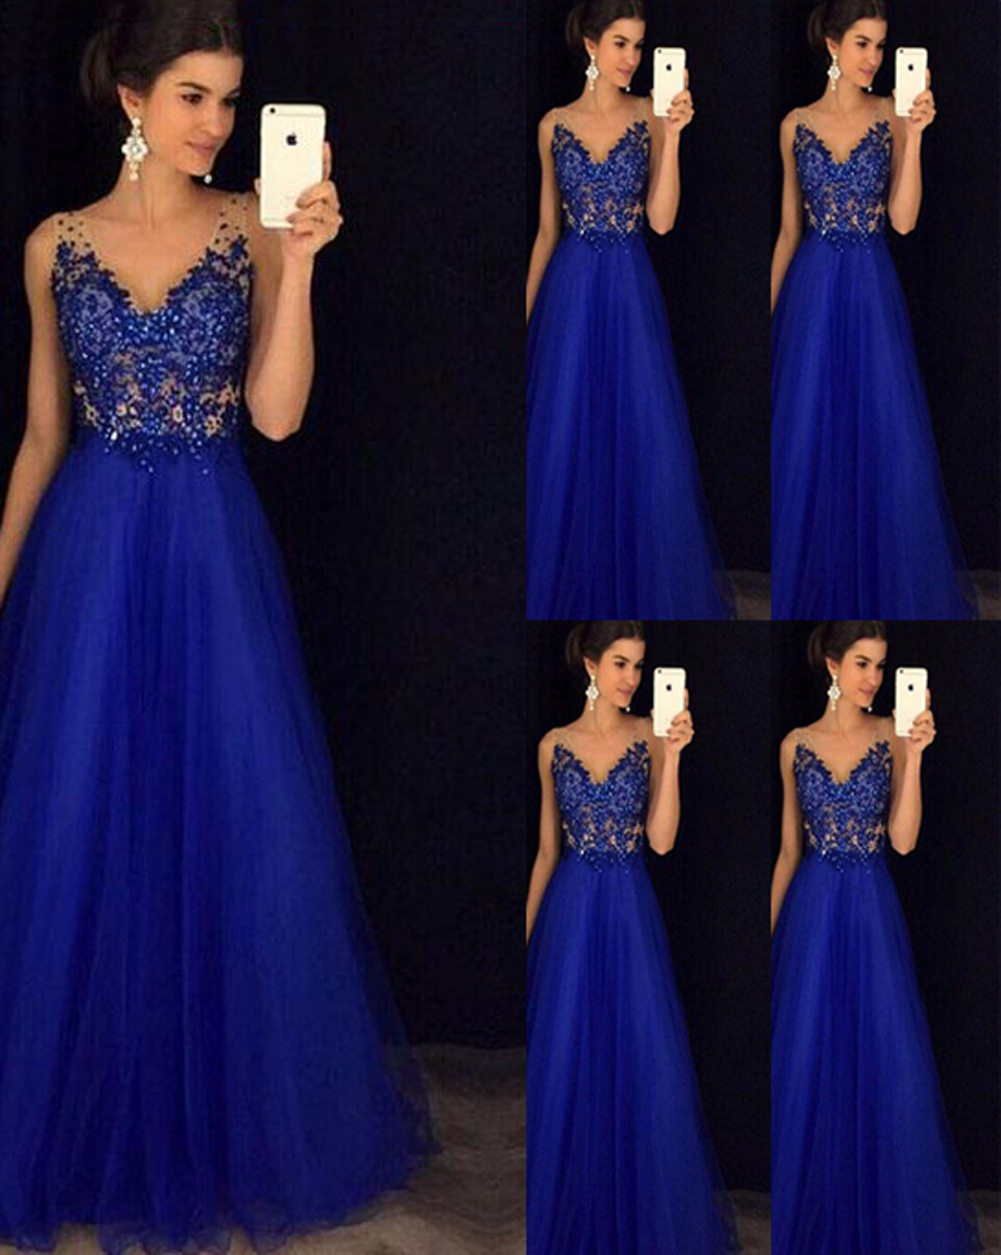 2019 Europe And America Hot Selling Solid Color Embroidered-Sequin Formal One-piece Dress